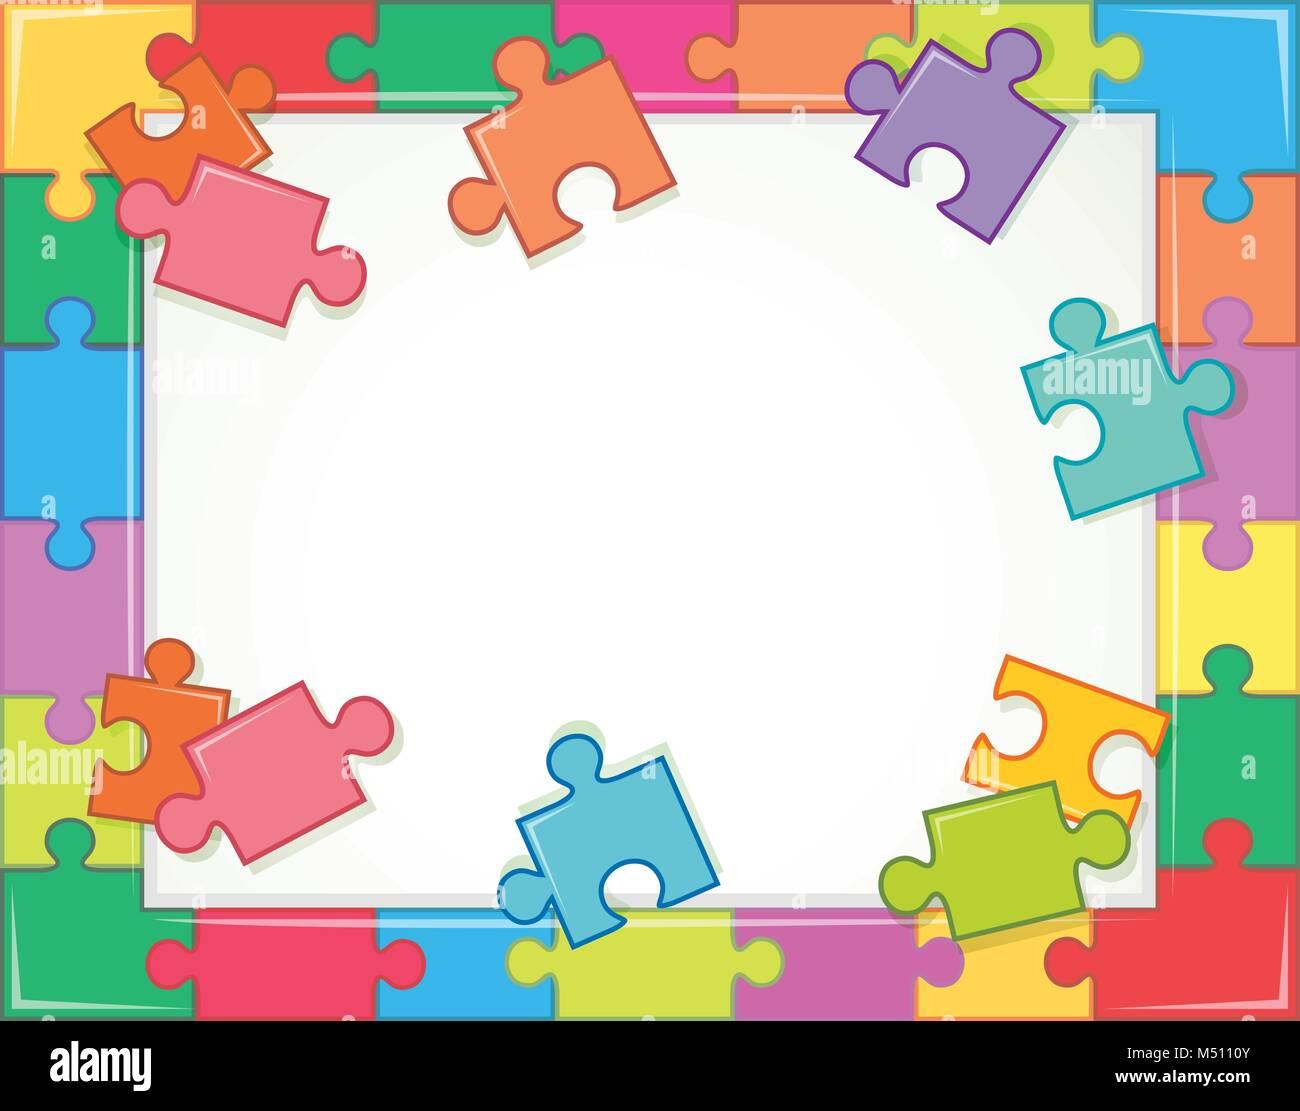 Frame template with jigsaw puzzle pieces illustration Stock Vector ...